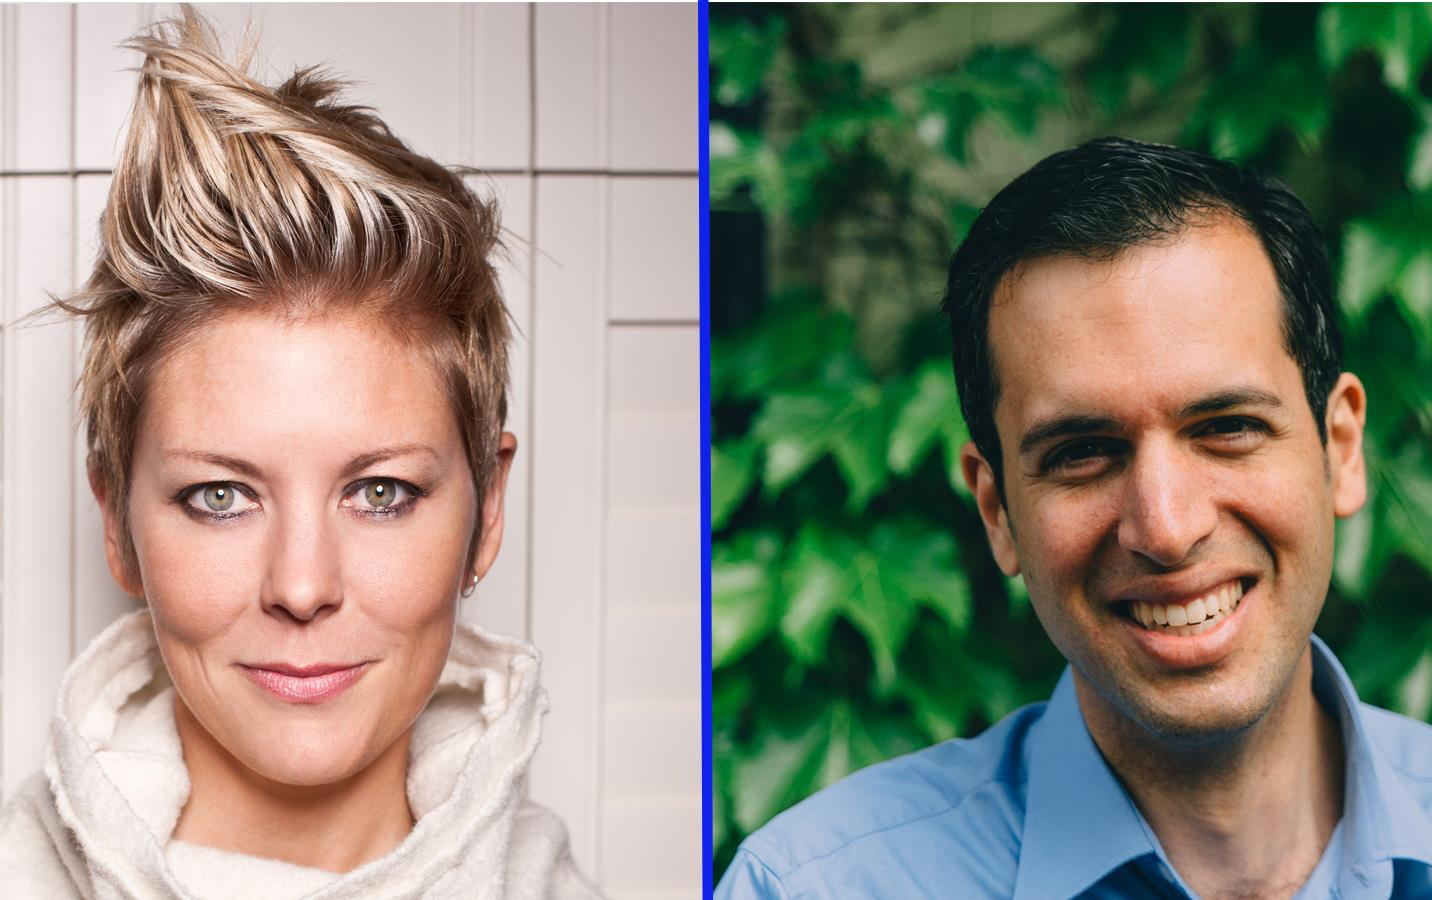 Headliners Dr. Morgaine Gaye and Daniel Stone